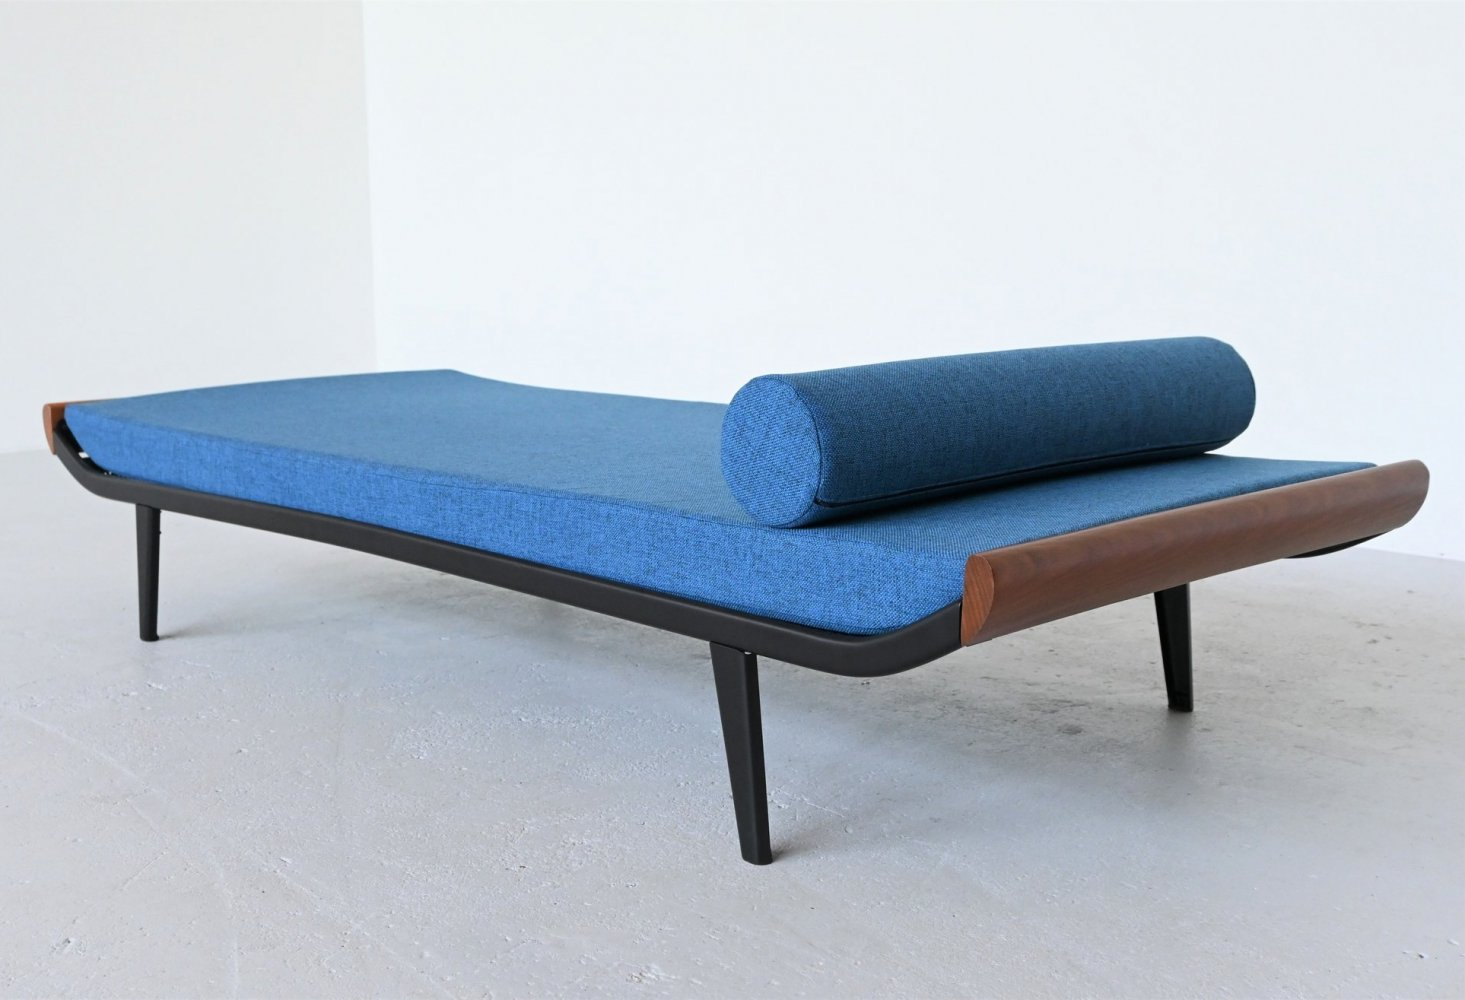 Dick Cordemeijer Cleopatra daybed by Auping, 1954